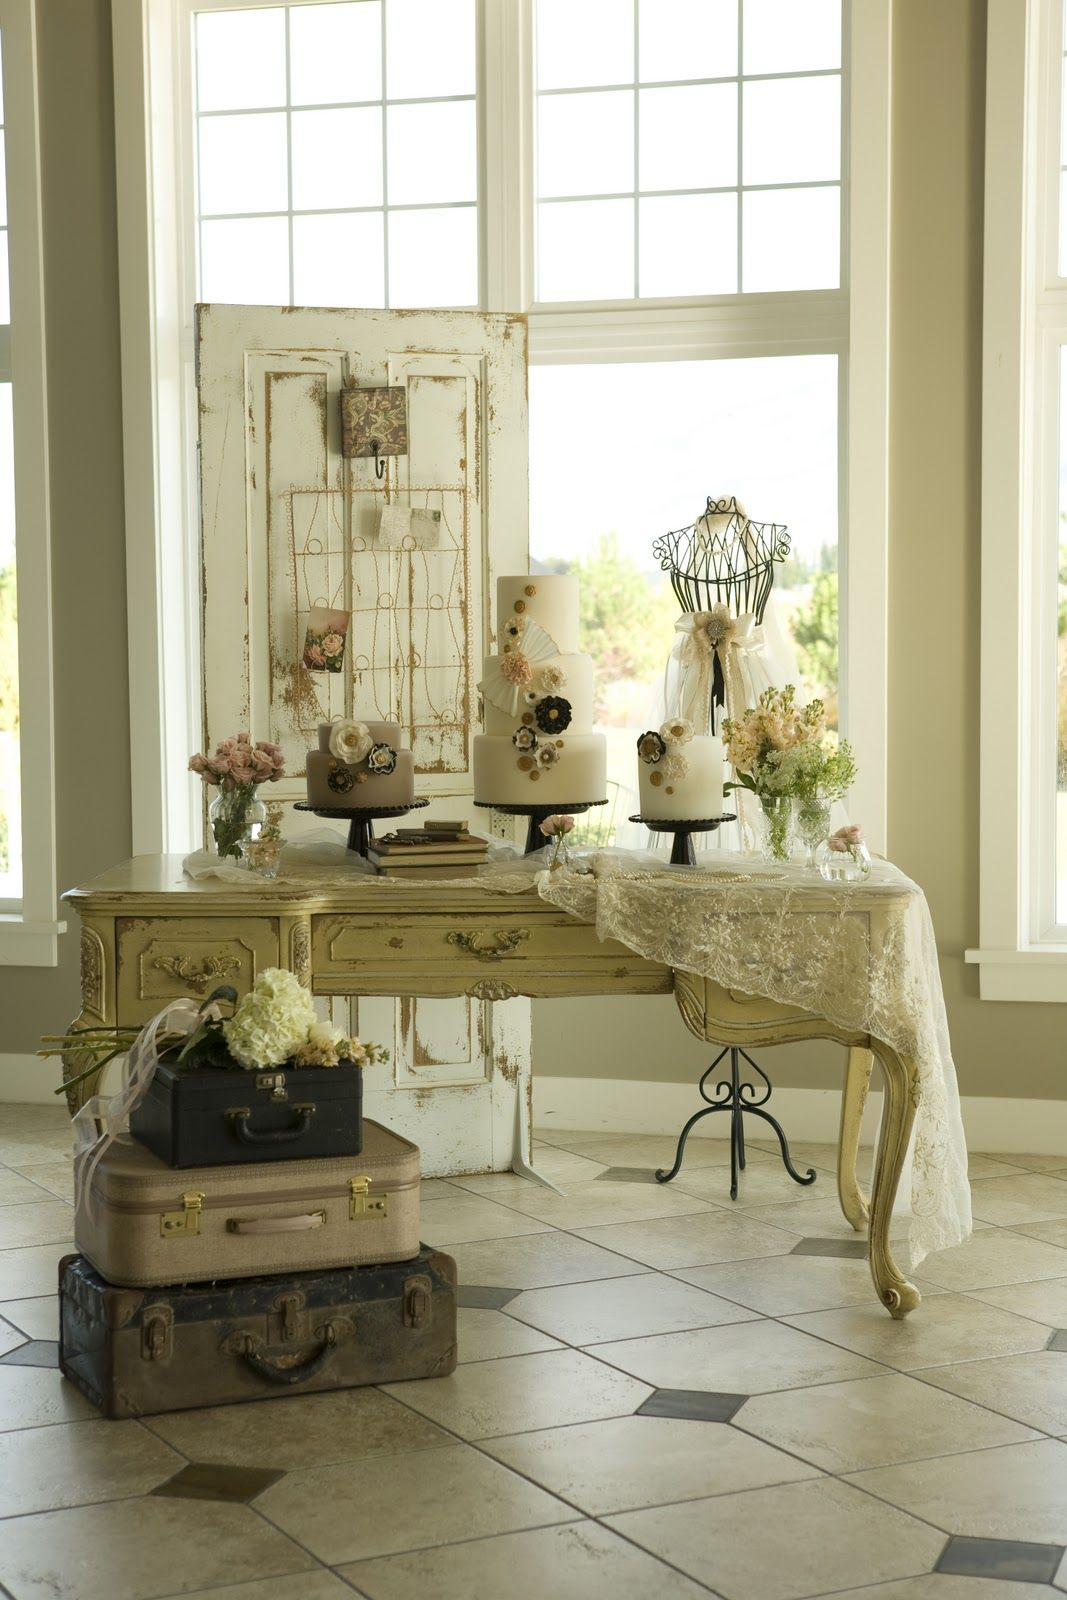 ♥Love this wedding vignette.  I would use this at the entrance table to hold the guest book and escort cards.